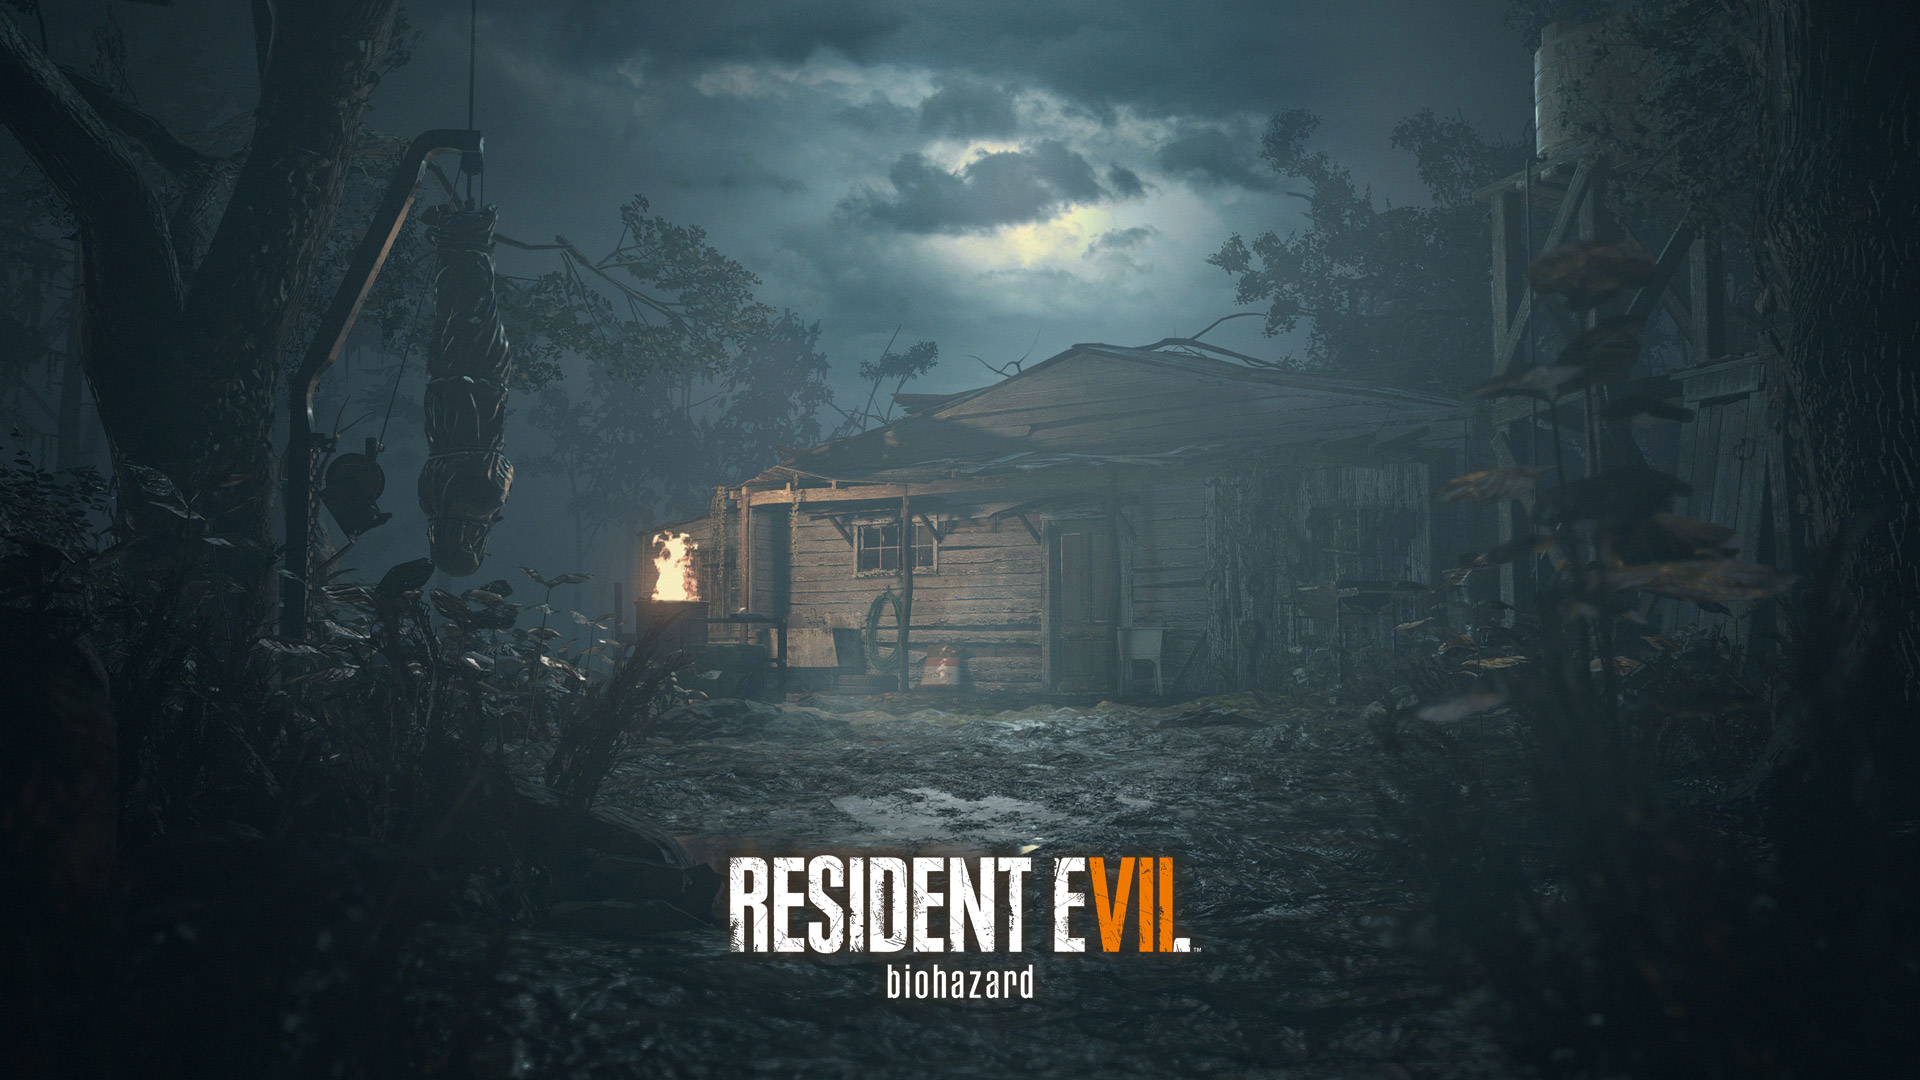 Free Resident Evil 7 Wallpaper in 1920x1080